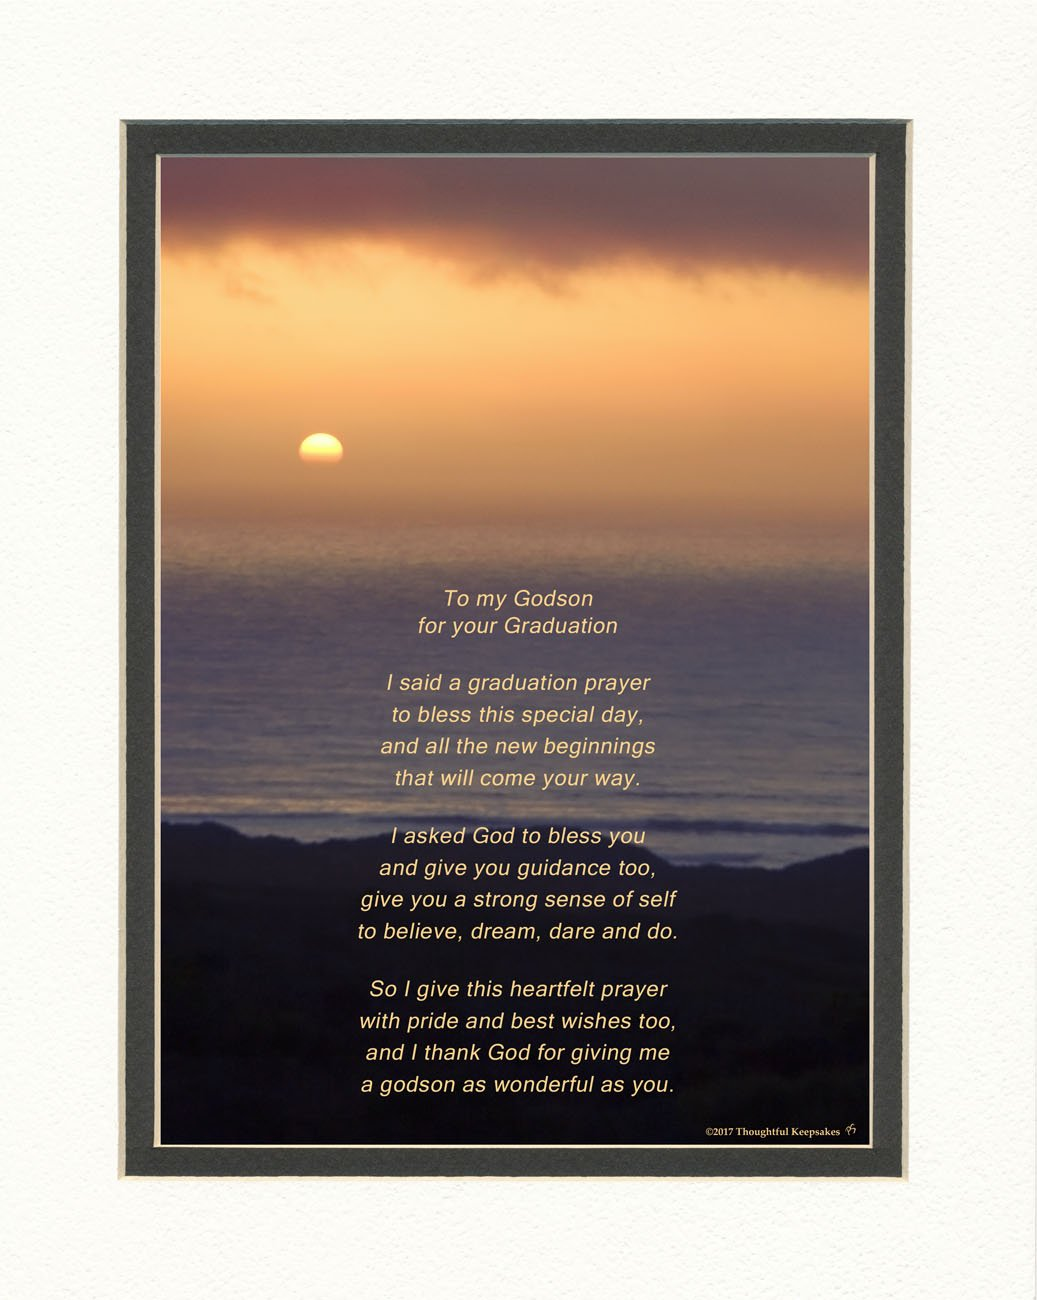 Graduation Gifts Godson, Ocean Sunset Photo with Godson Graduation Prayer Poem Poem, 8x10 Double Matted. Special Keepsake for Godson, Unique College and High School Grad Gifts.